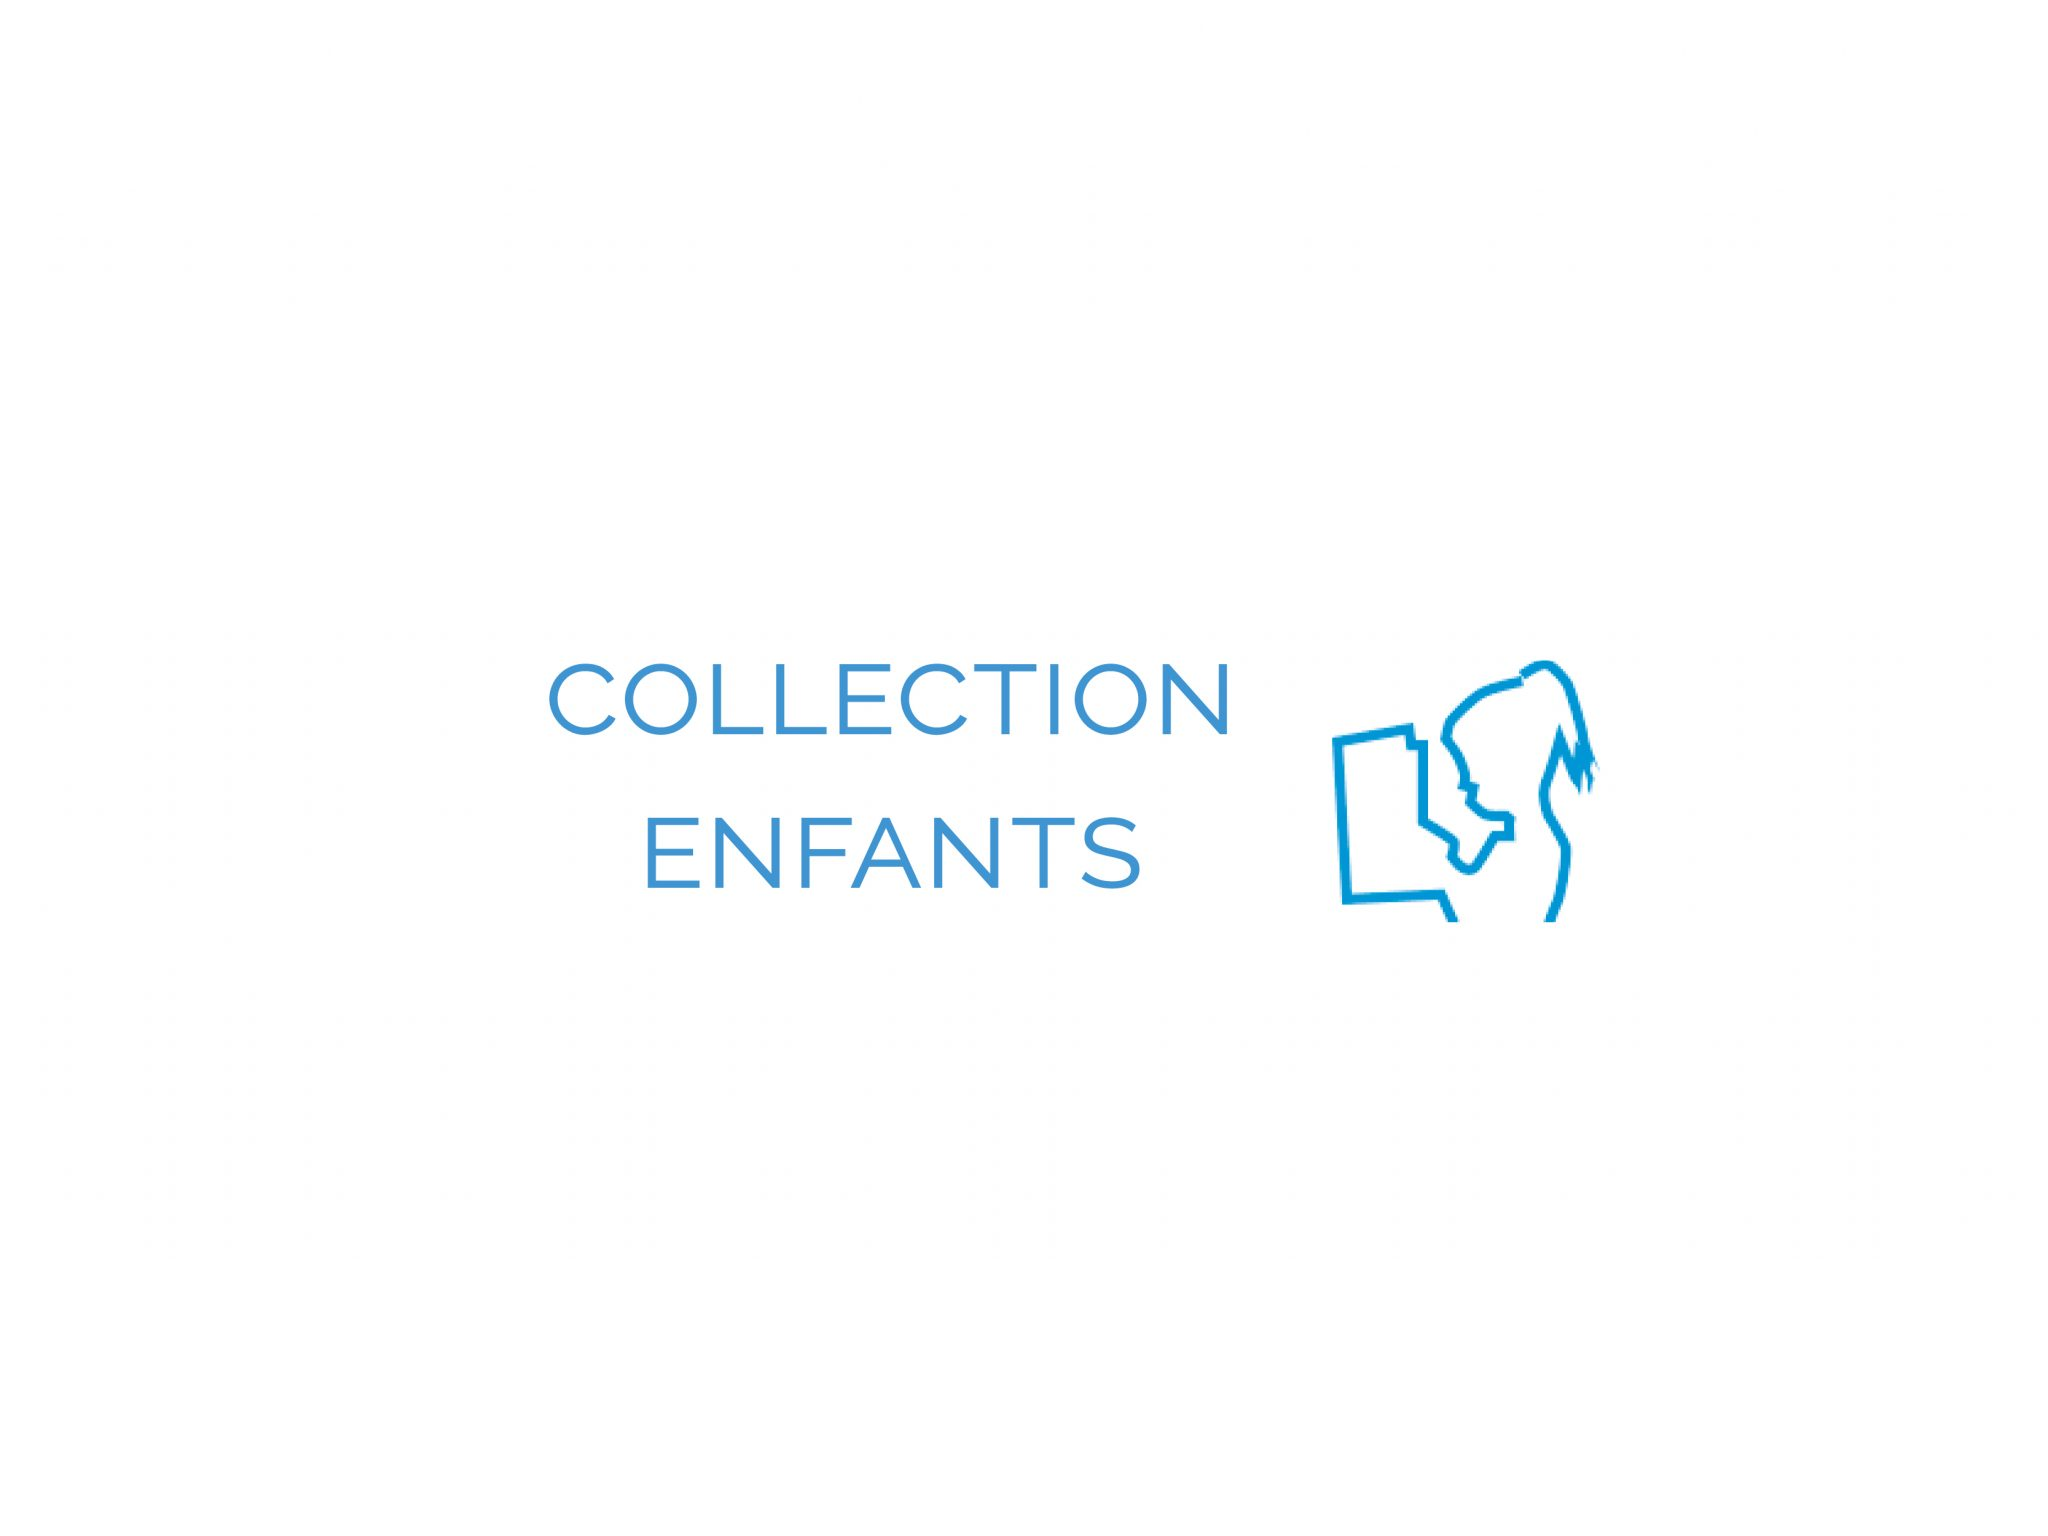 Collection enfants